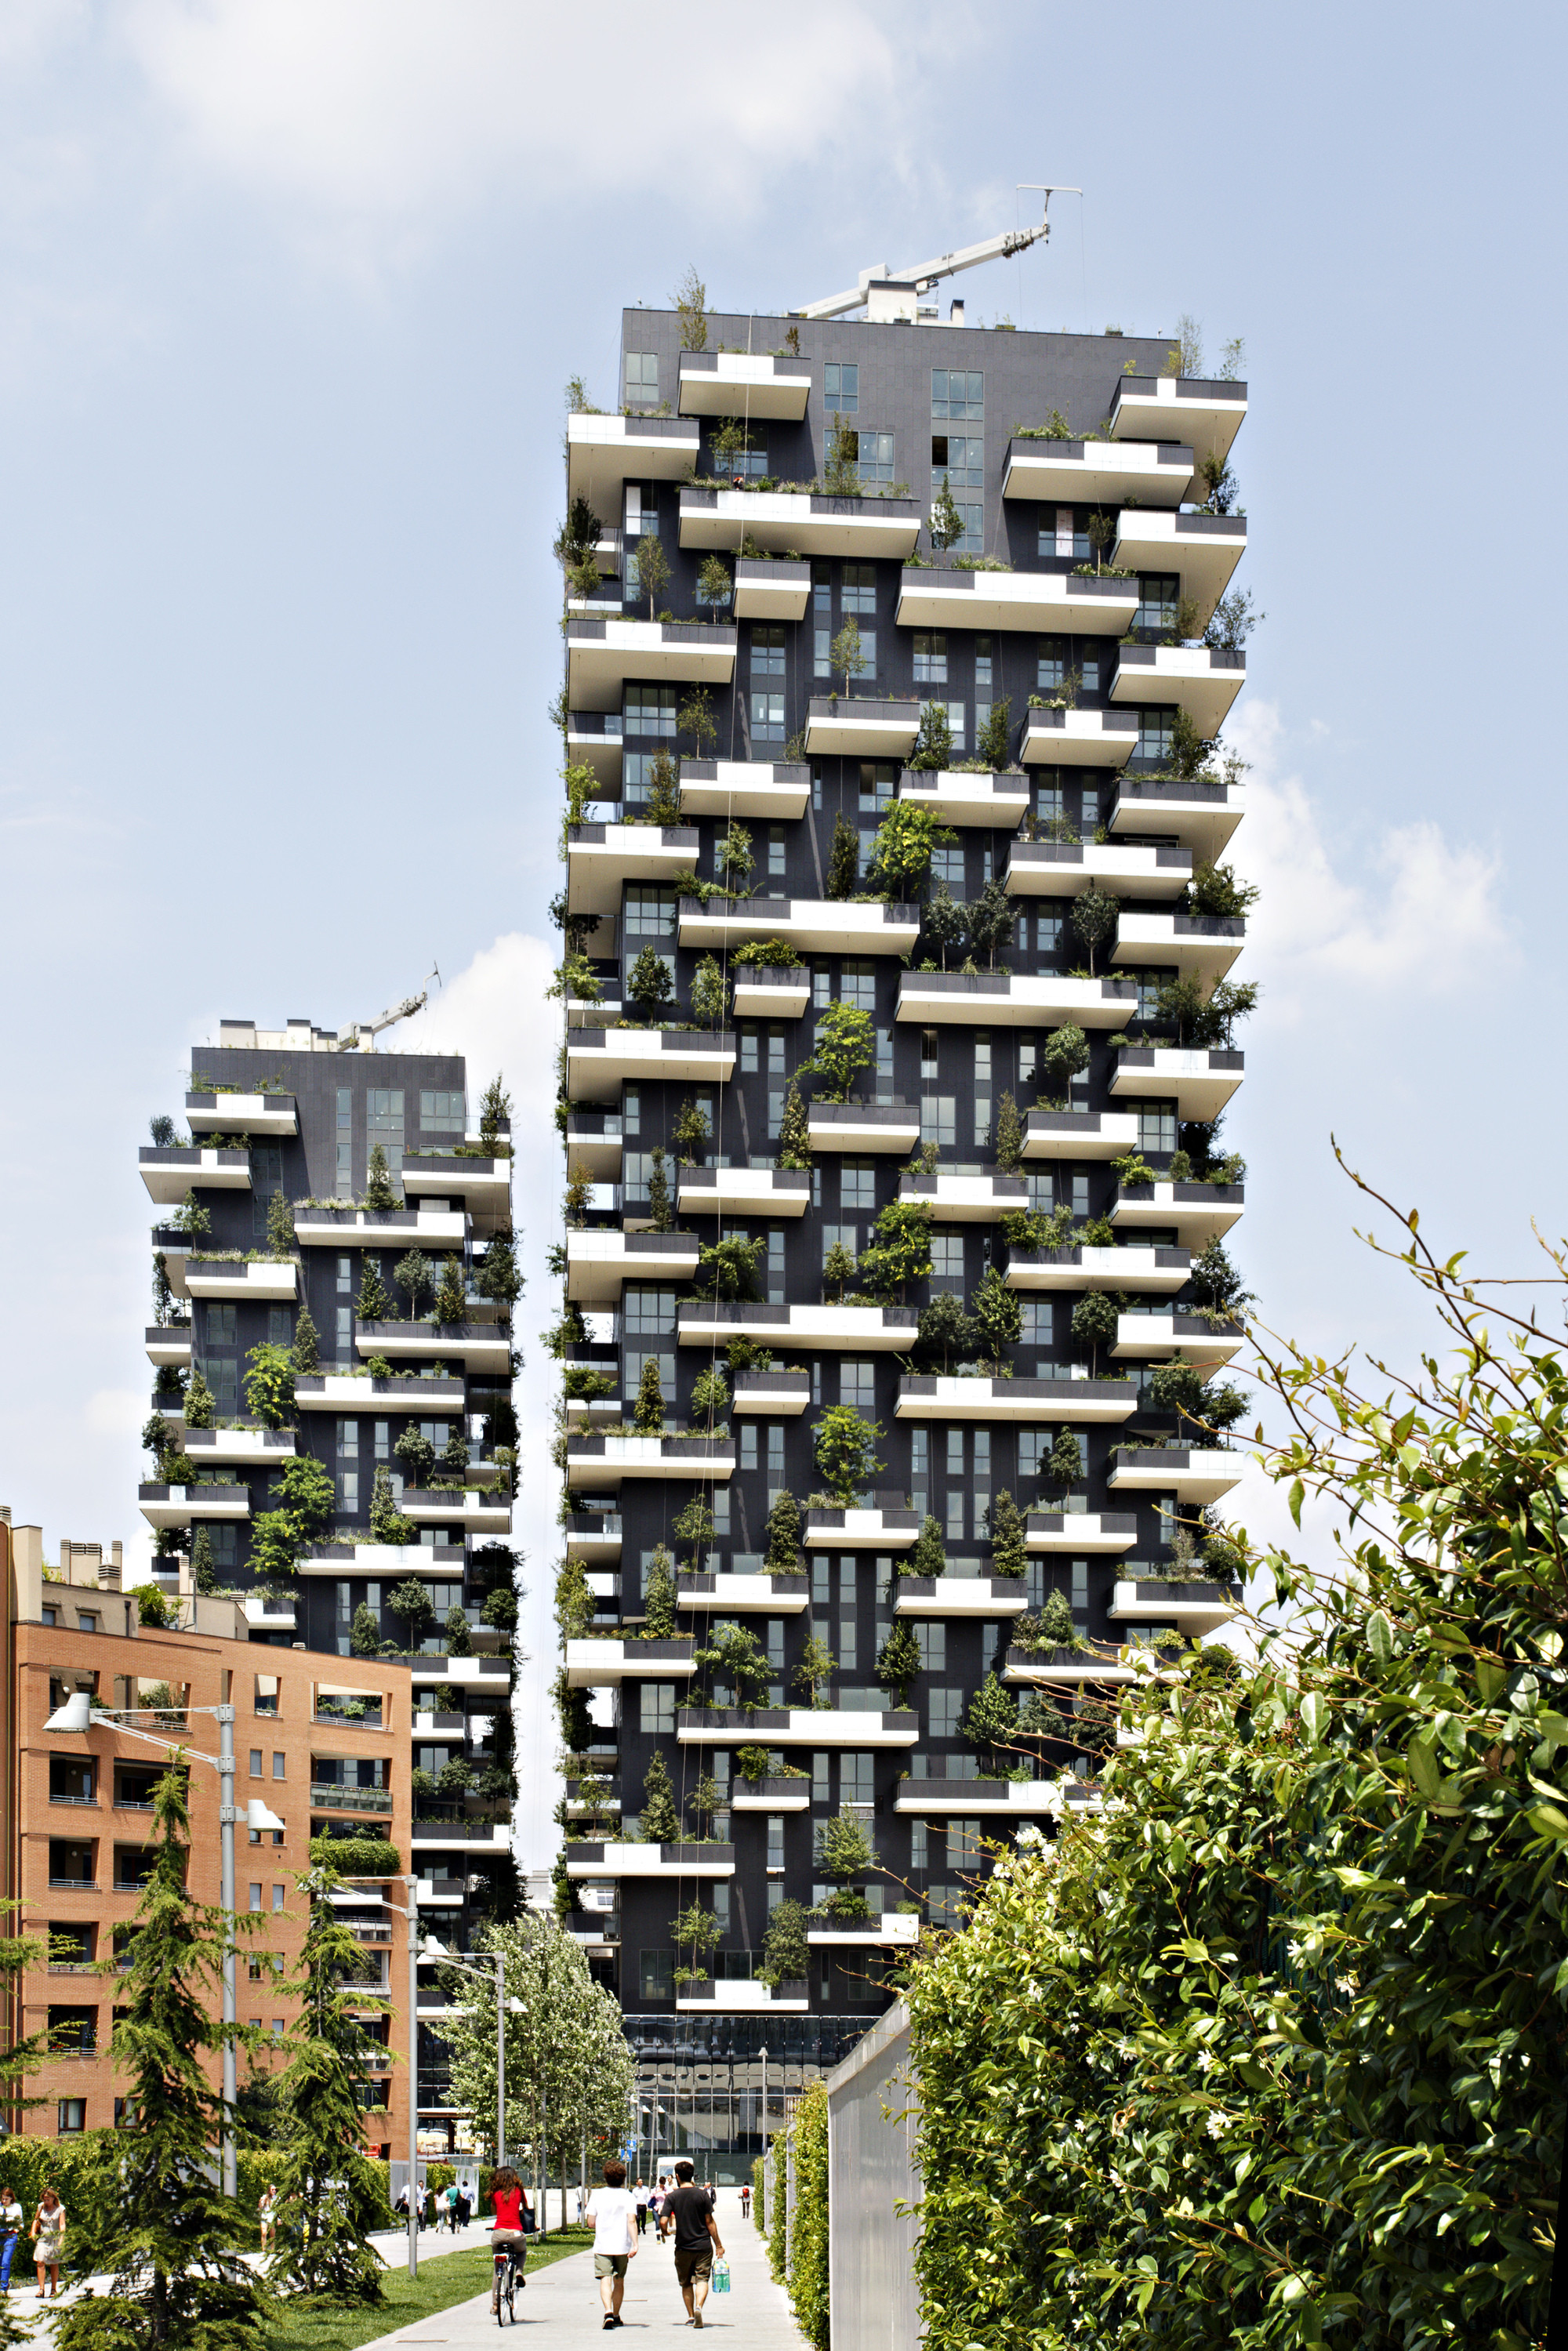 Bosco verticale the world 39 s most beautiful and for Modern high rise building design